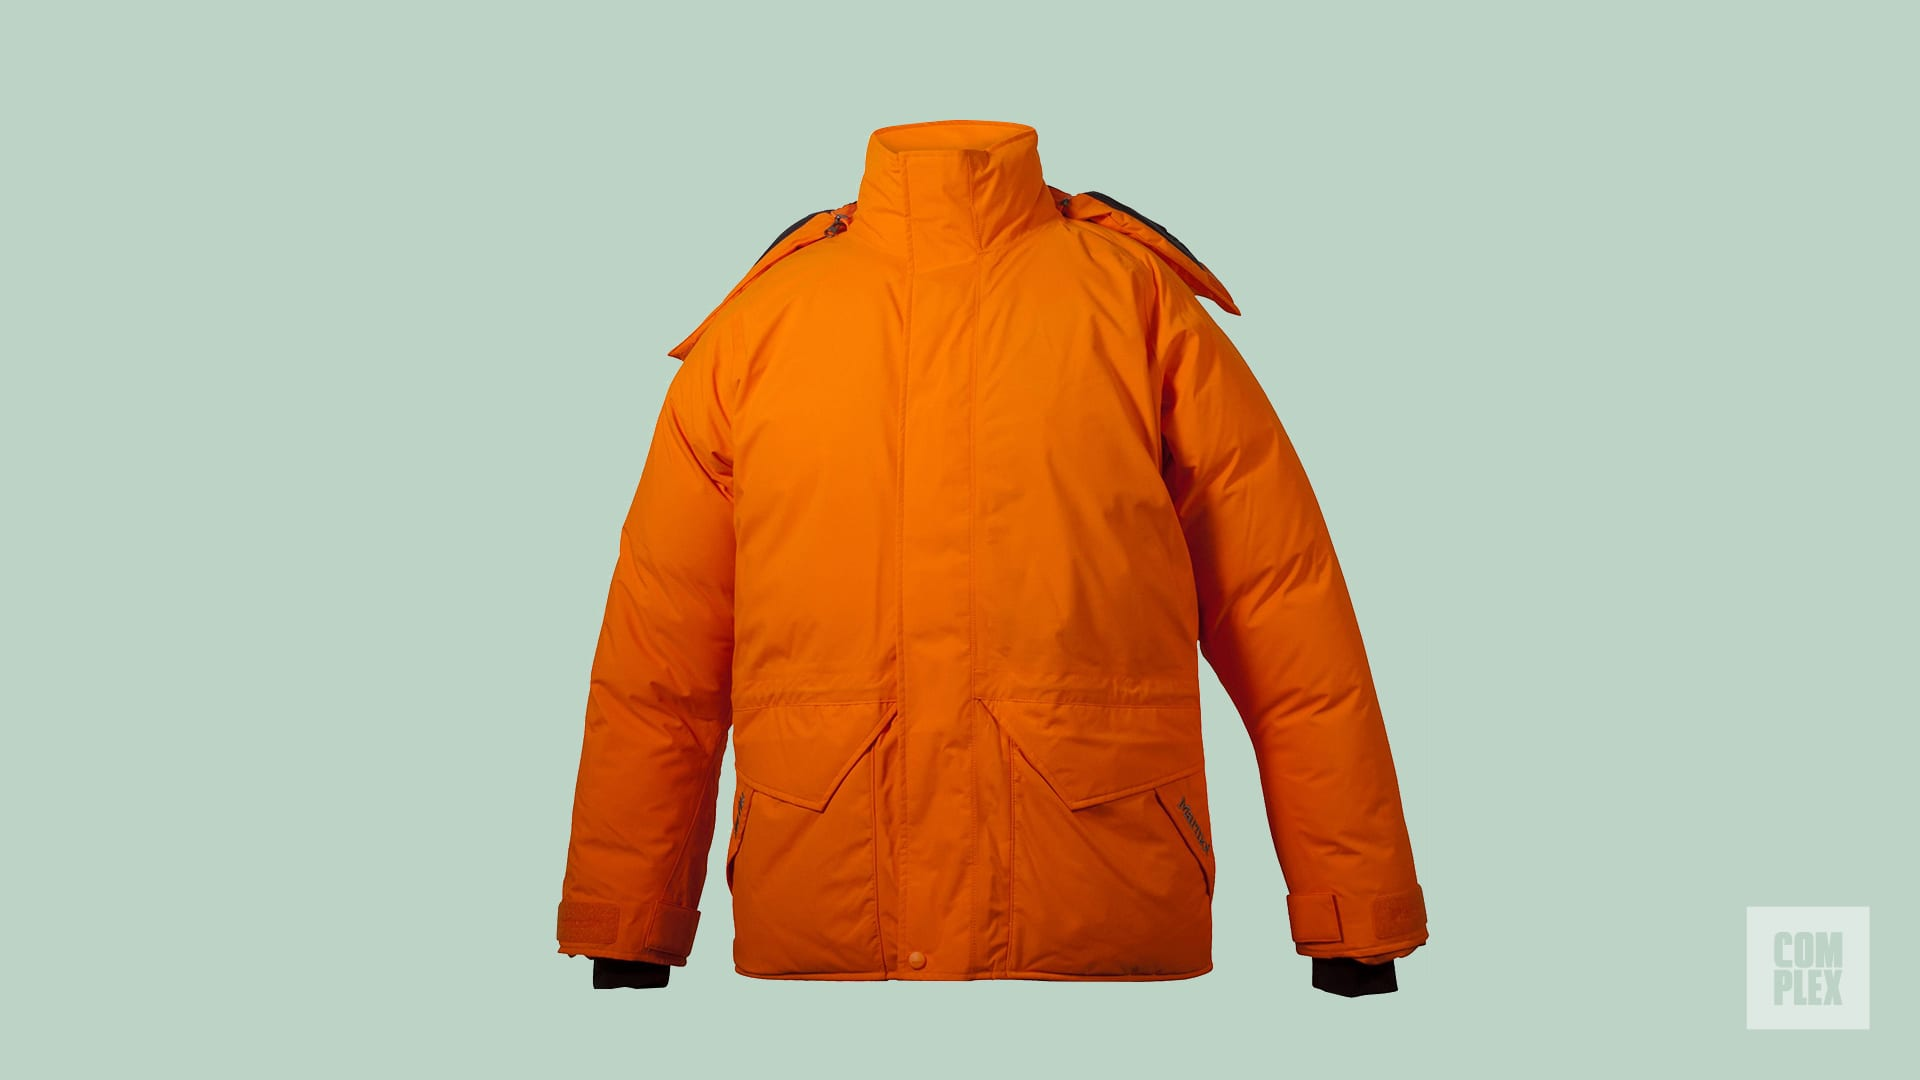 Best NYC Jackets and Outerwear Guide The Marmot Mammoth Parka or Biggie